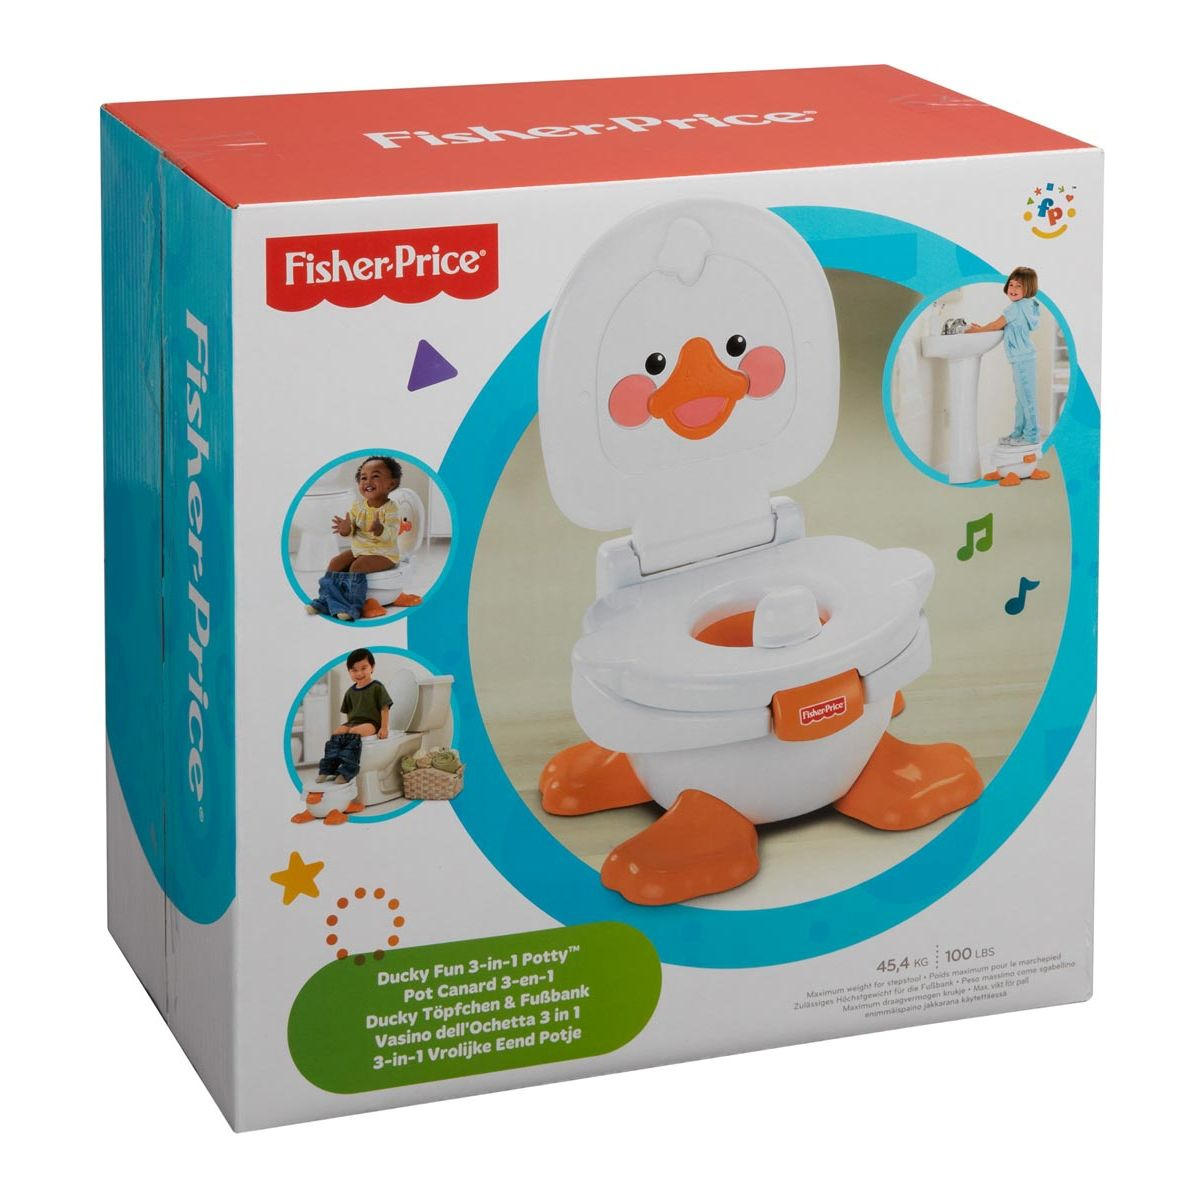 FisherPrice Ducky Fun 3In1 Potty (With images) Fisher